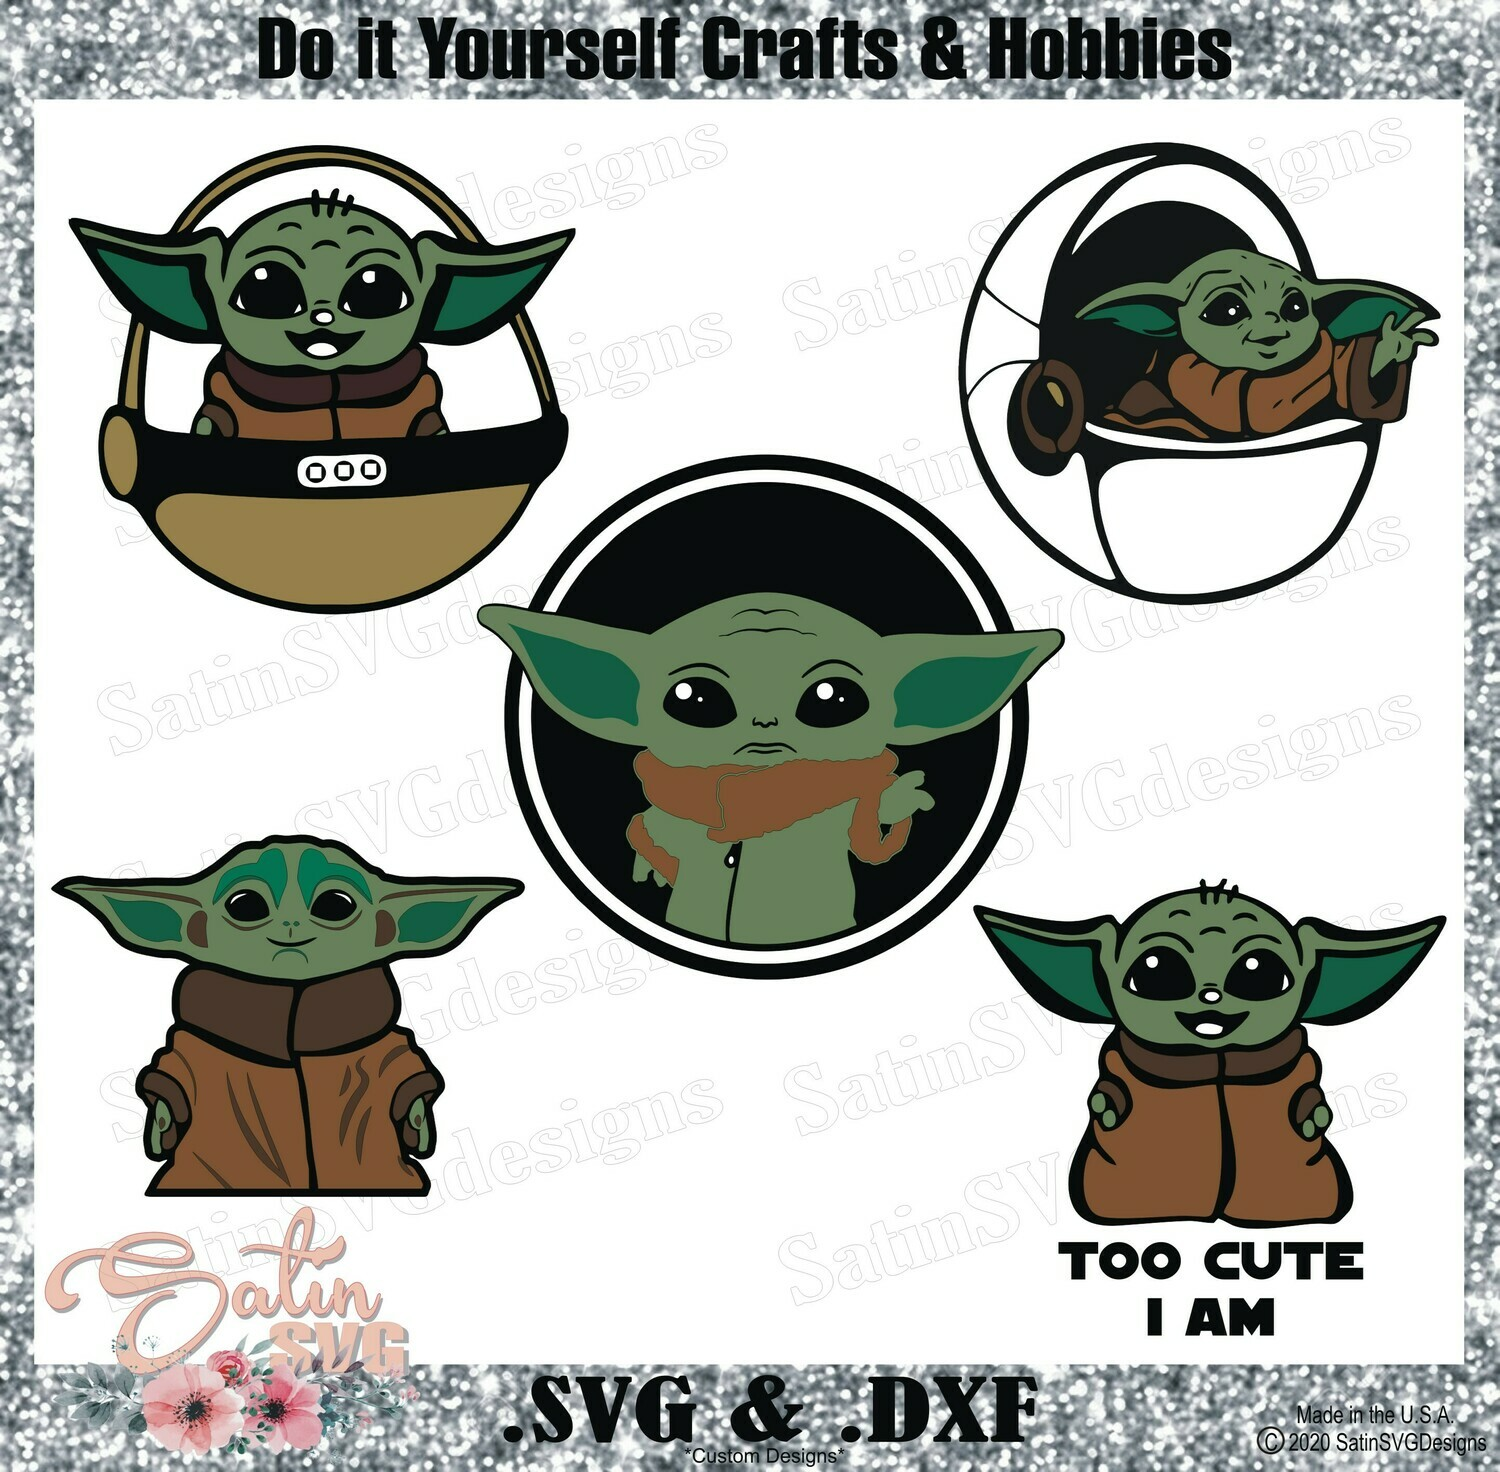 Baby Yoda Design Svg Files Cricut Silhouette Studio Digital Cut Files